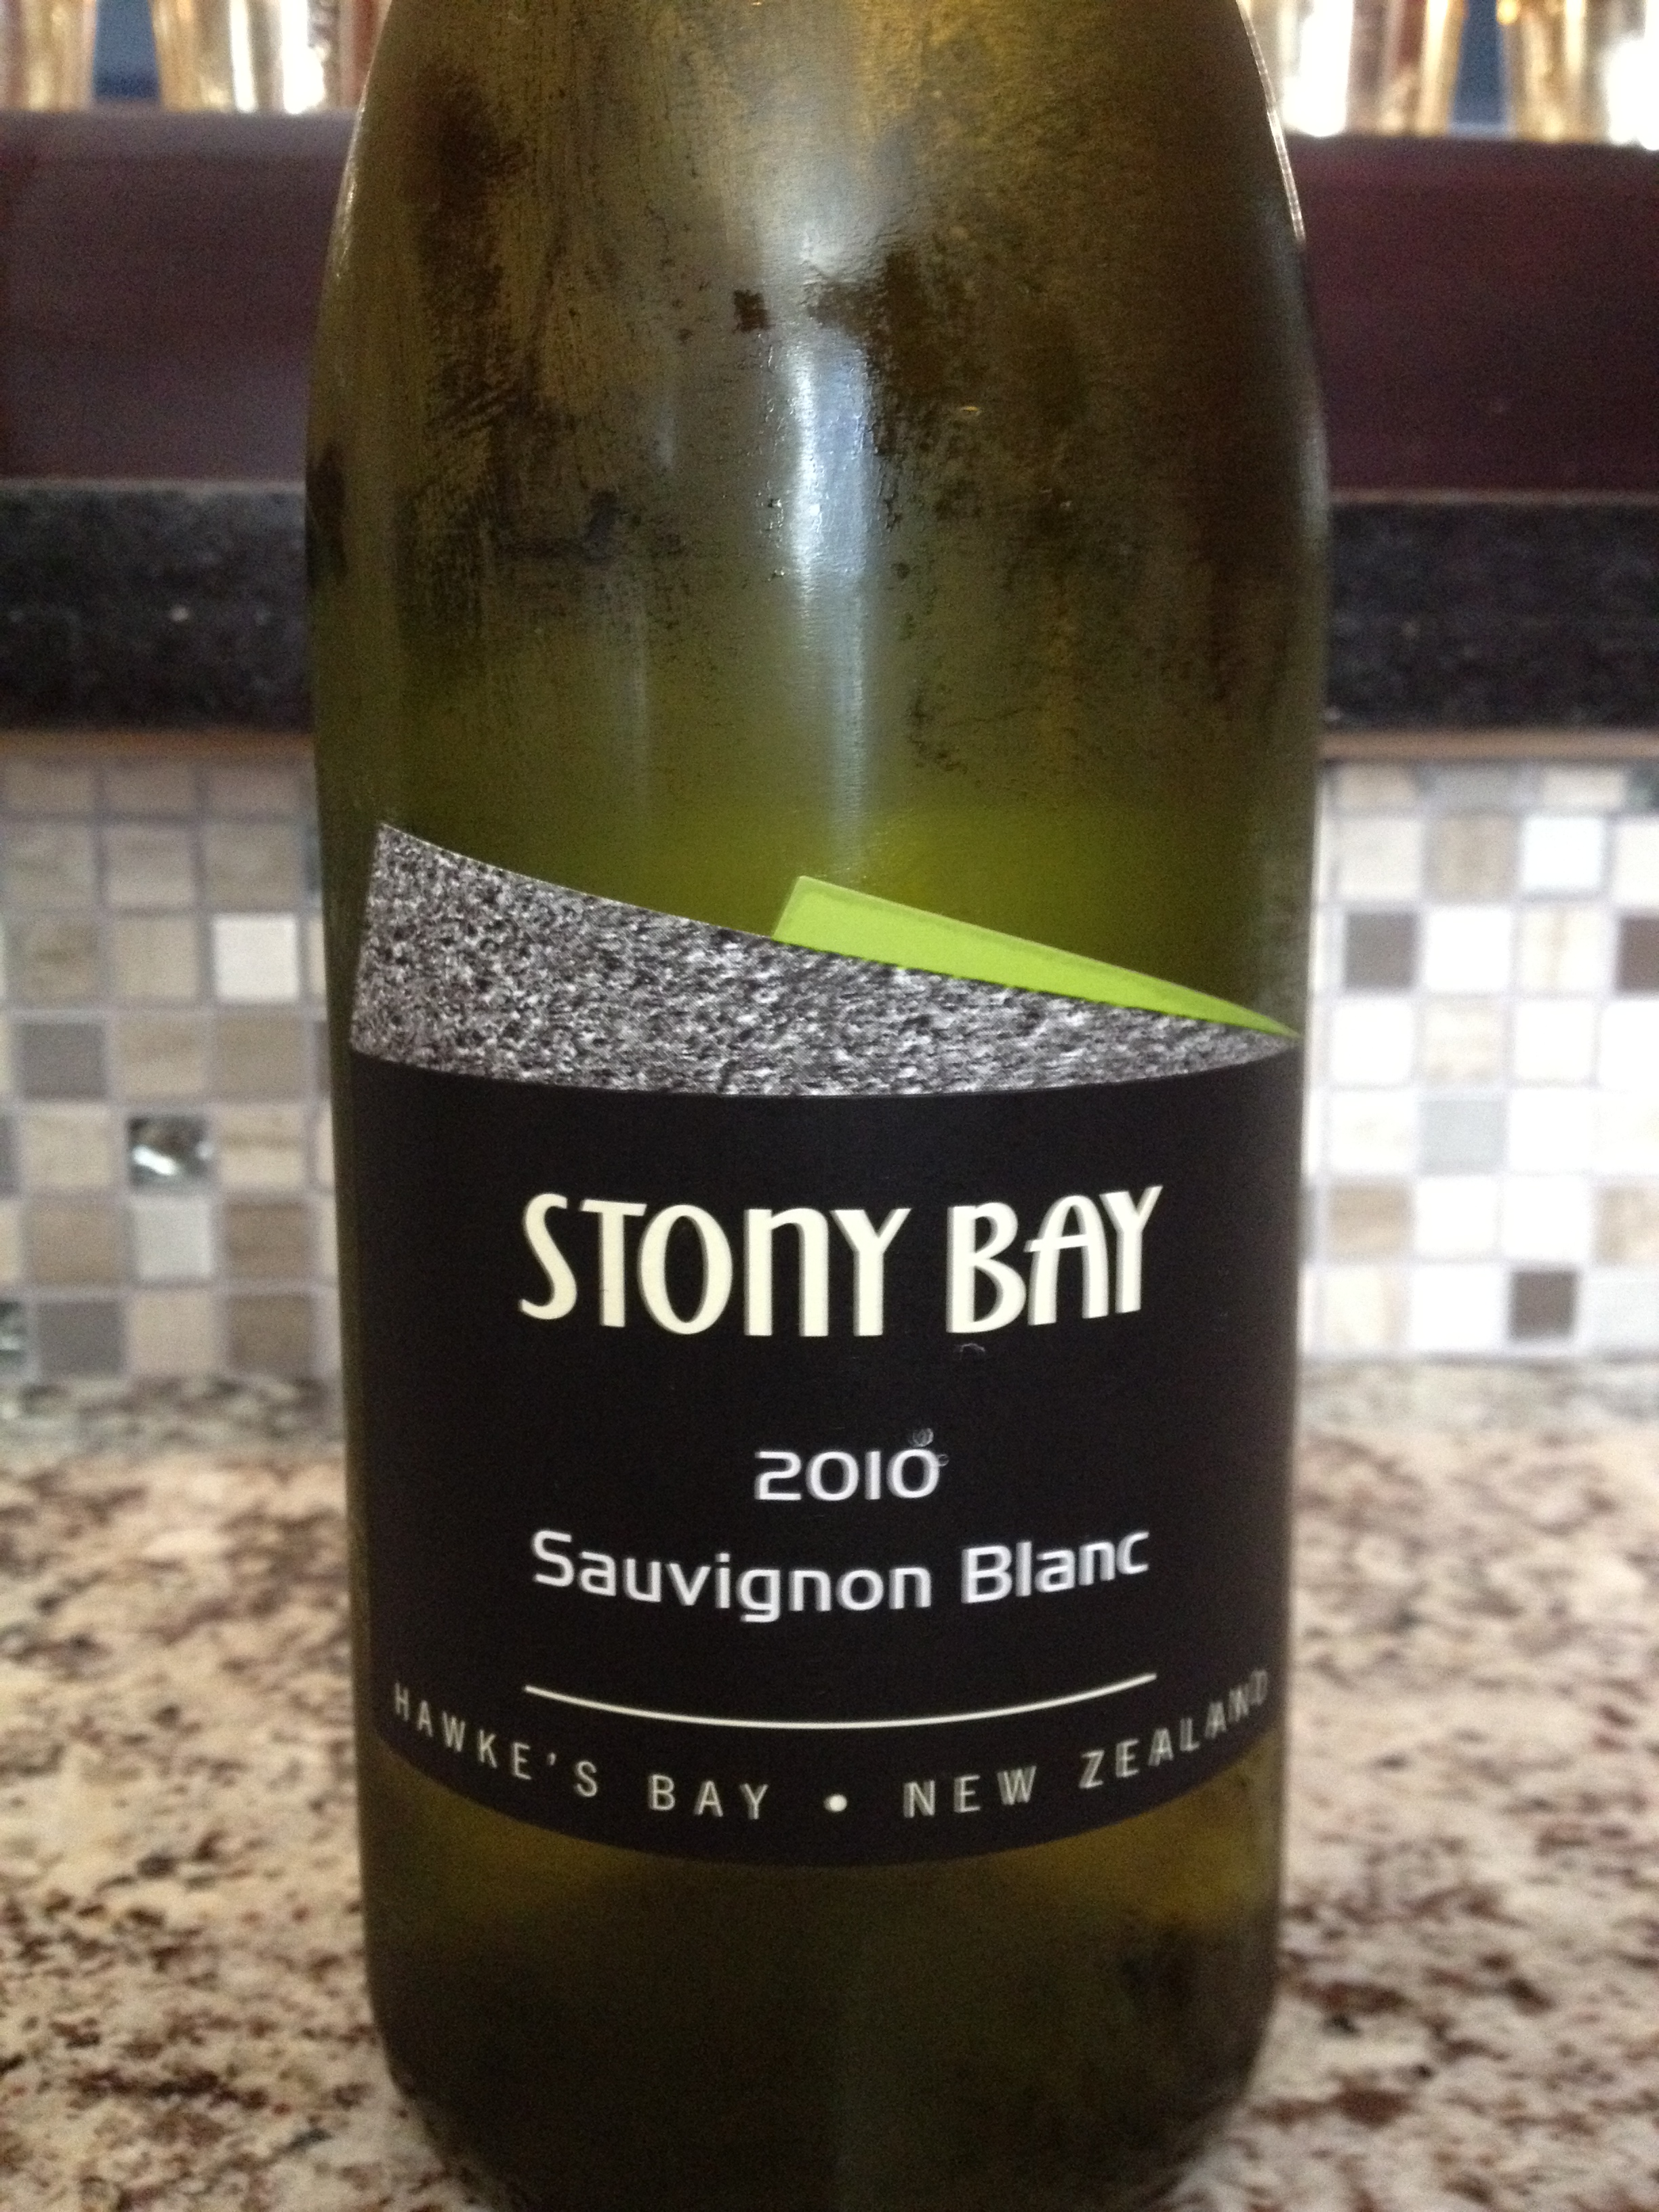 10 Stony Bay Sauv Blanc Bottle